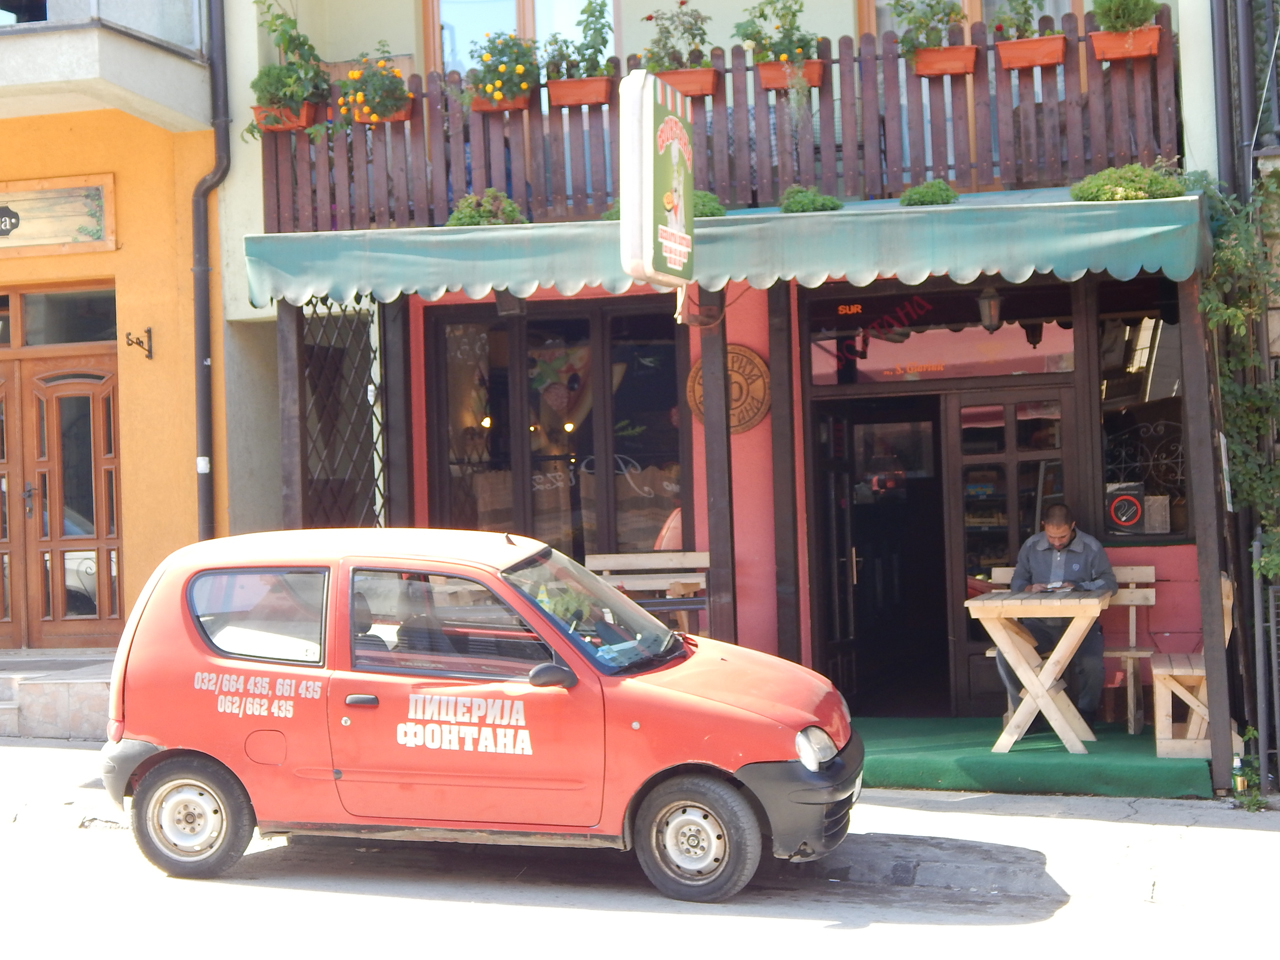 PIZZERIA FONTANA Delivery Ivanjica - Photo 2